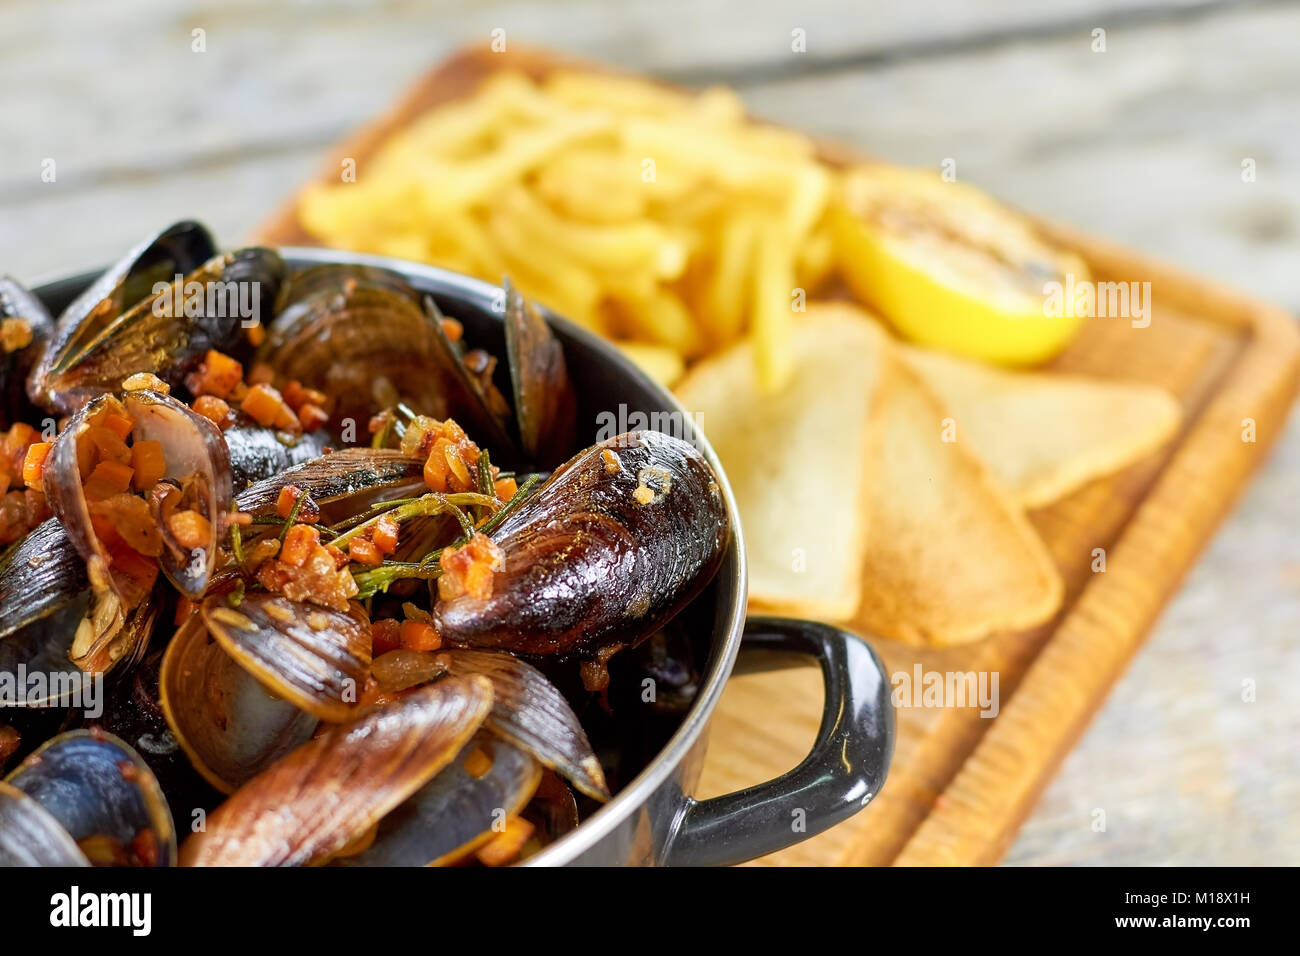 Close up saucepan with shell mussels and chopped vegetables. - Stock Image